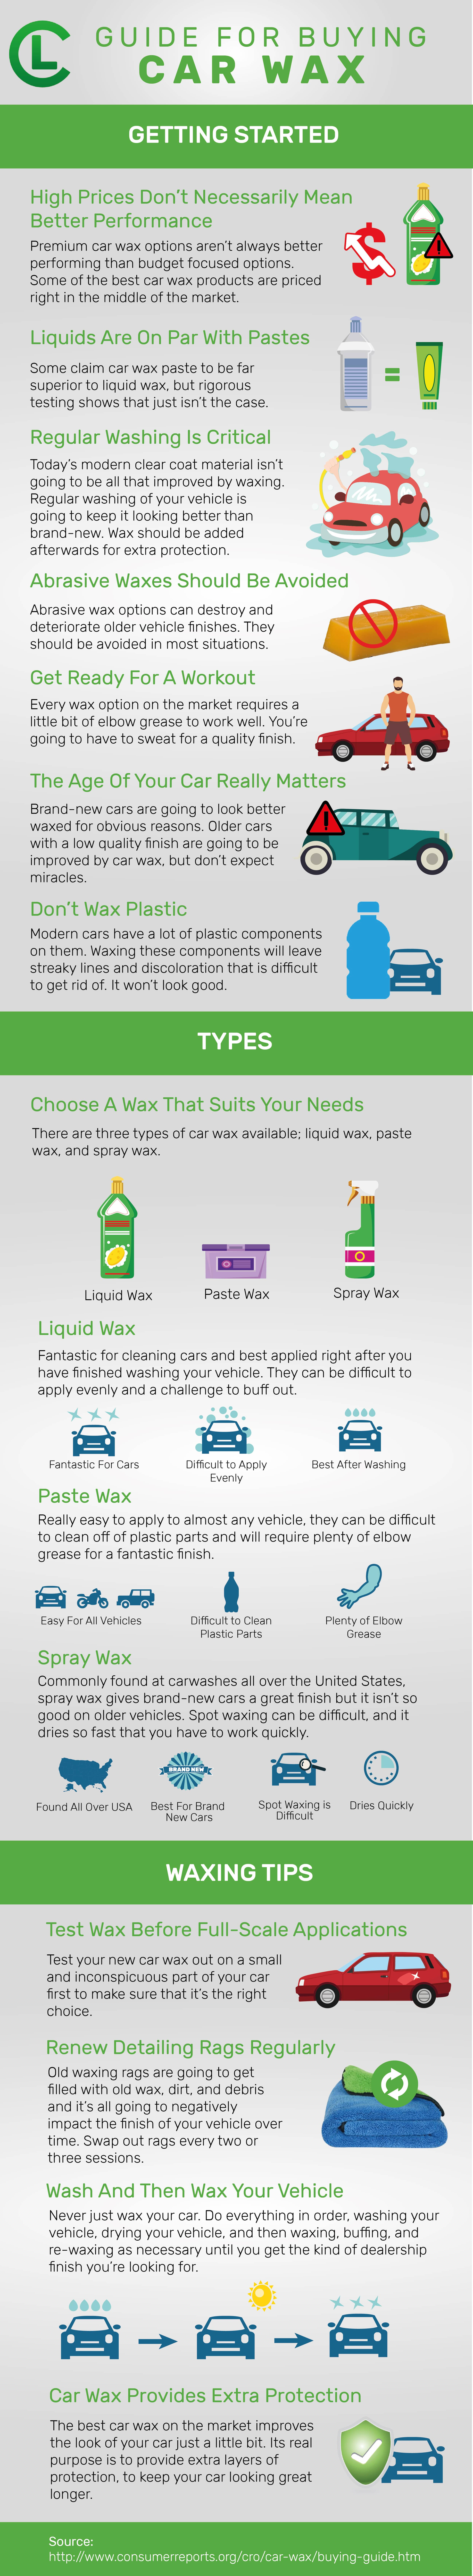 guide for buying car wax infographic